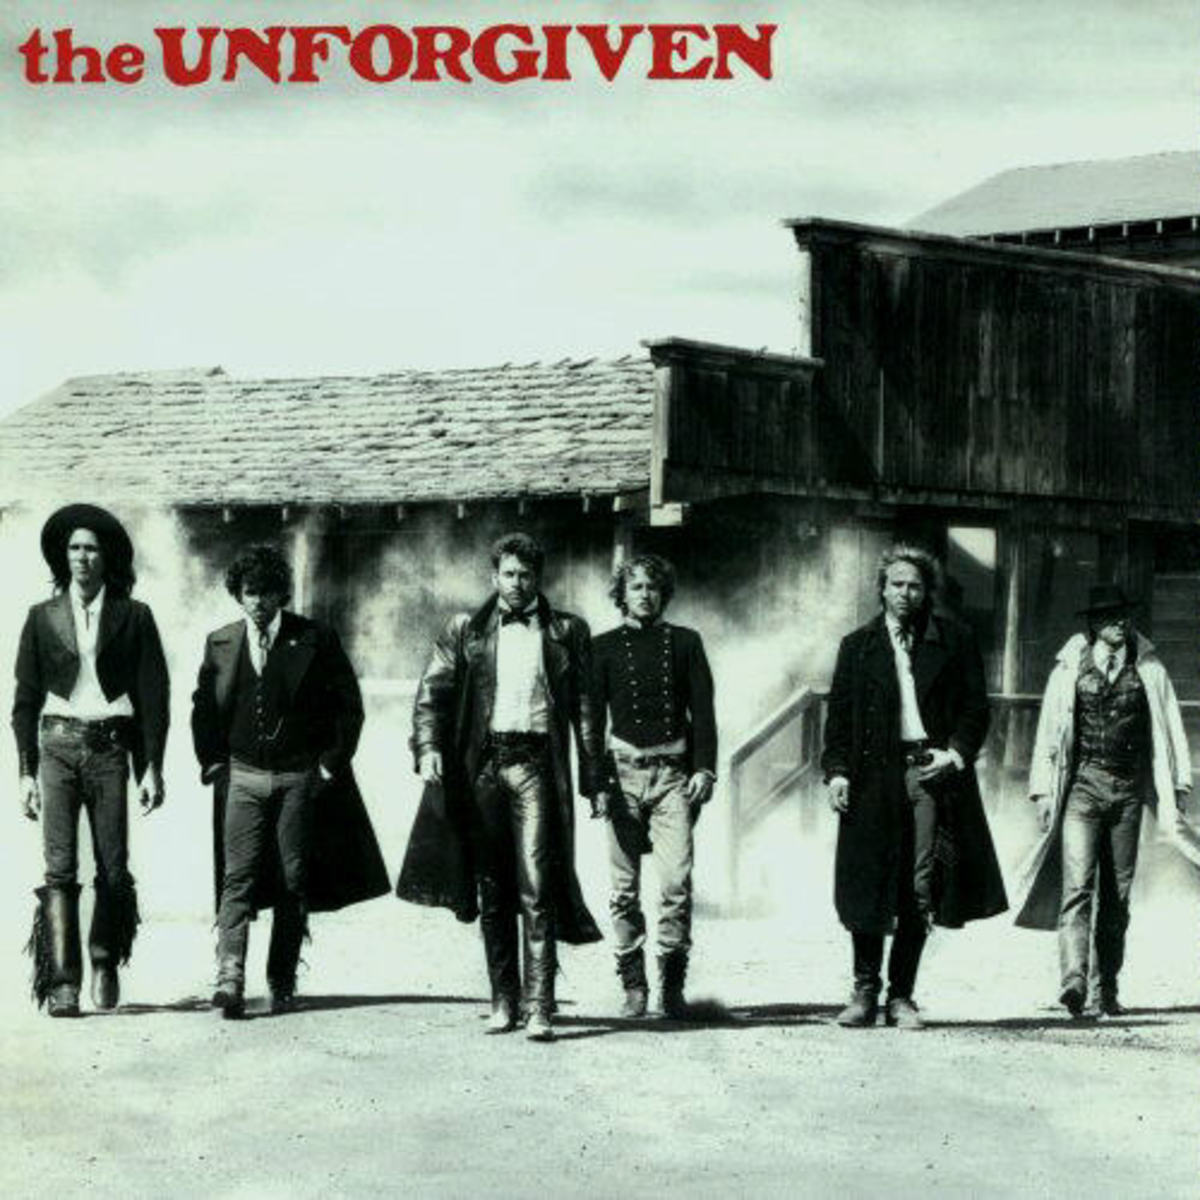 10 Albums You Need To Hear # 6: The Unforgiven by The Unforgiven